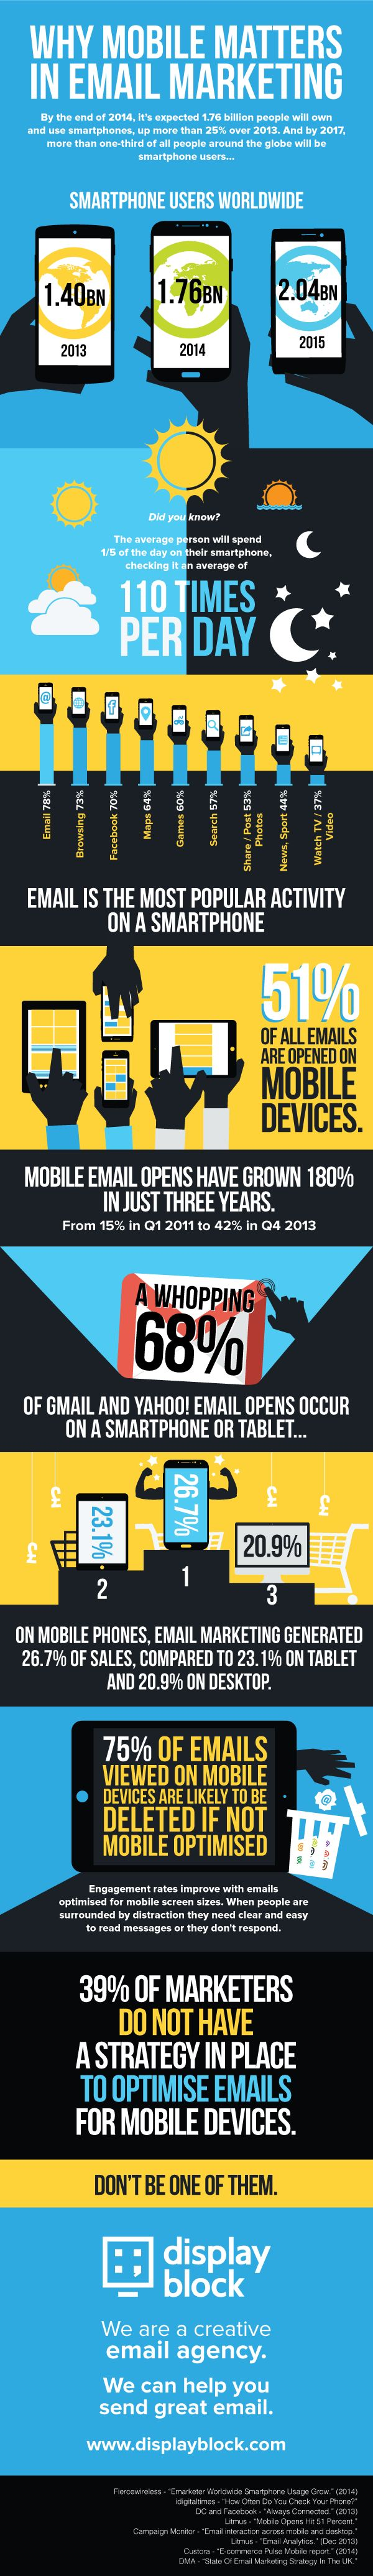 We have put together a few figures to illustrate why mobile very much matters in email marketing.